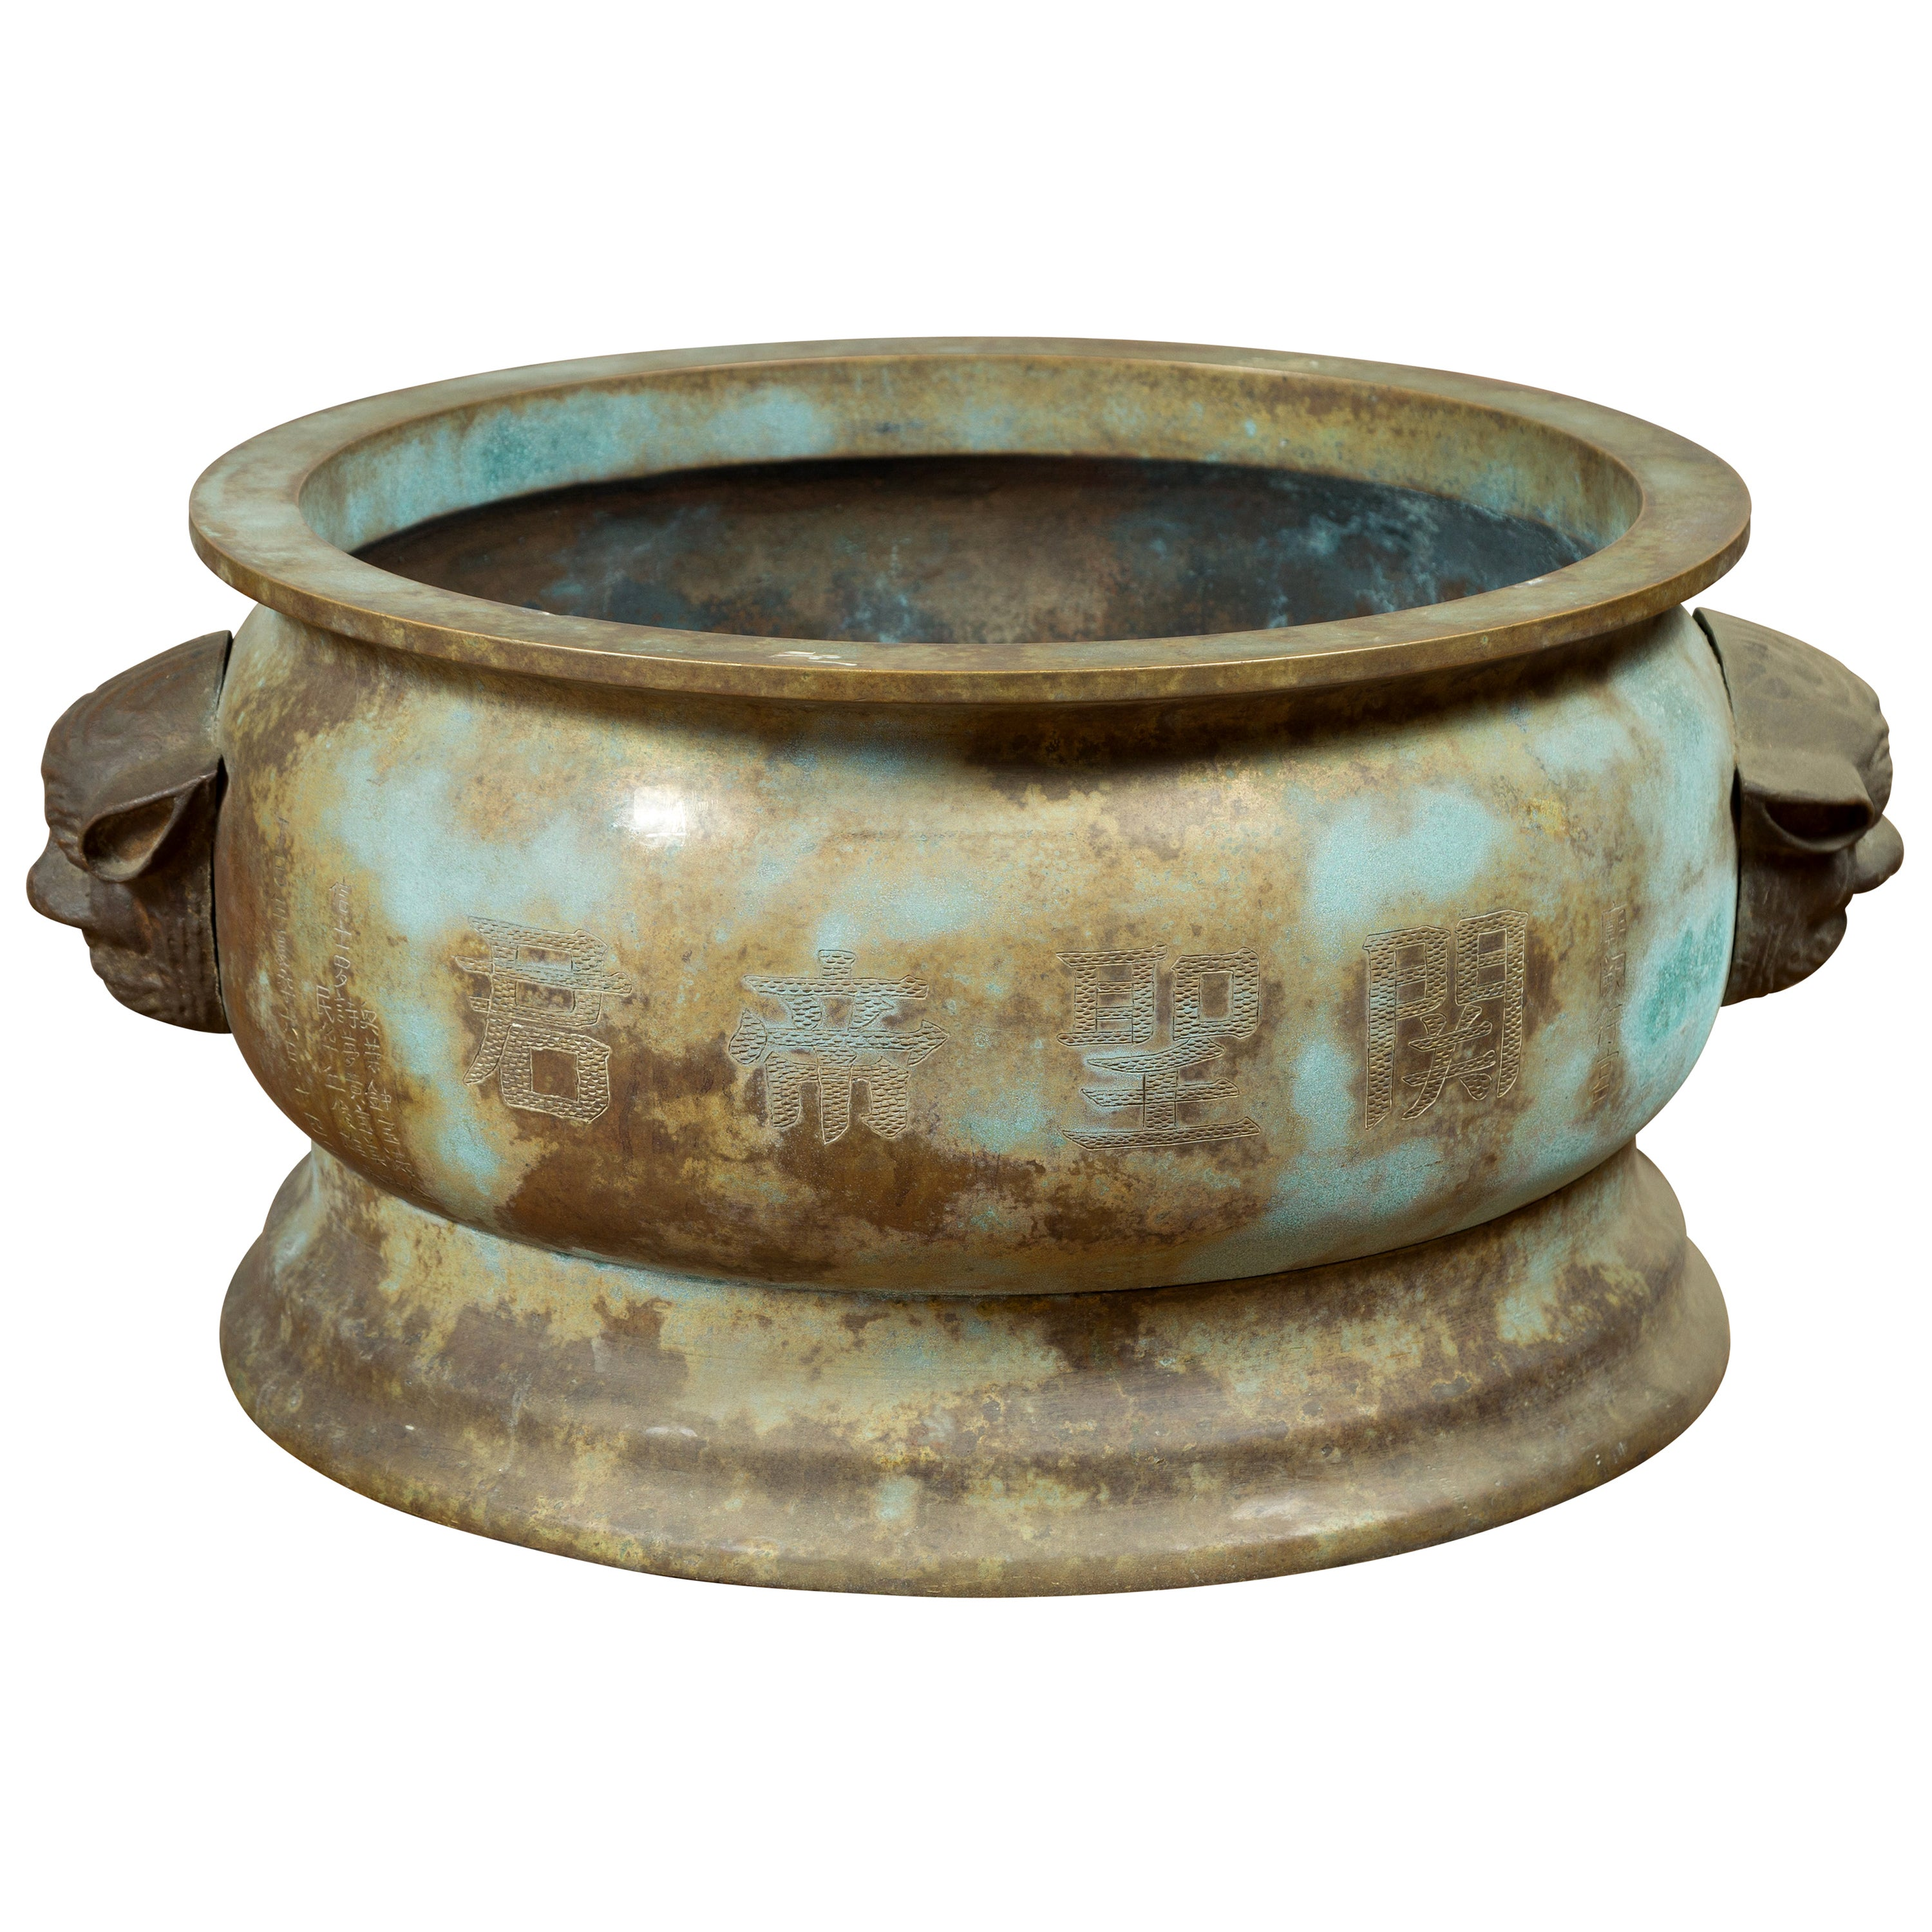 Qing Dynasty Chinese Bronze Oversized Planter with Calligraphy and Handles